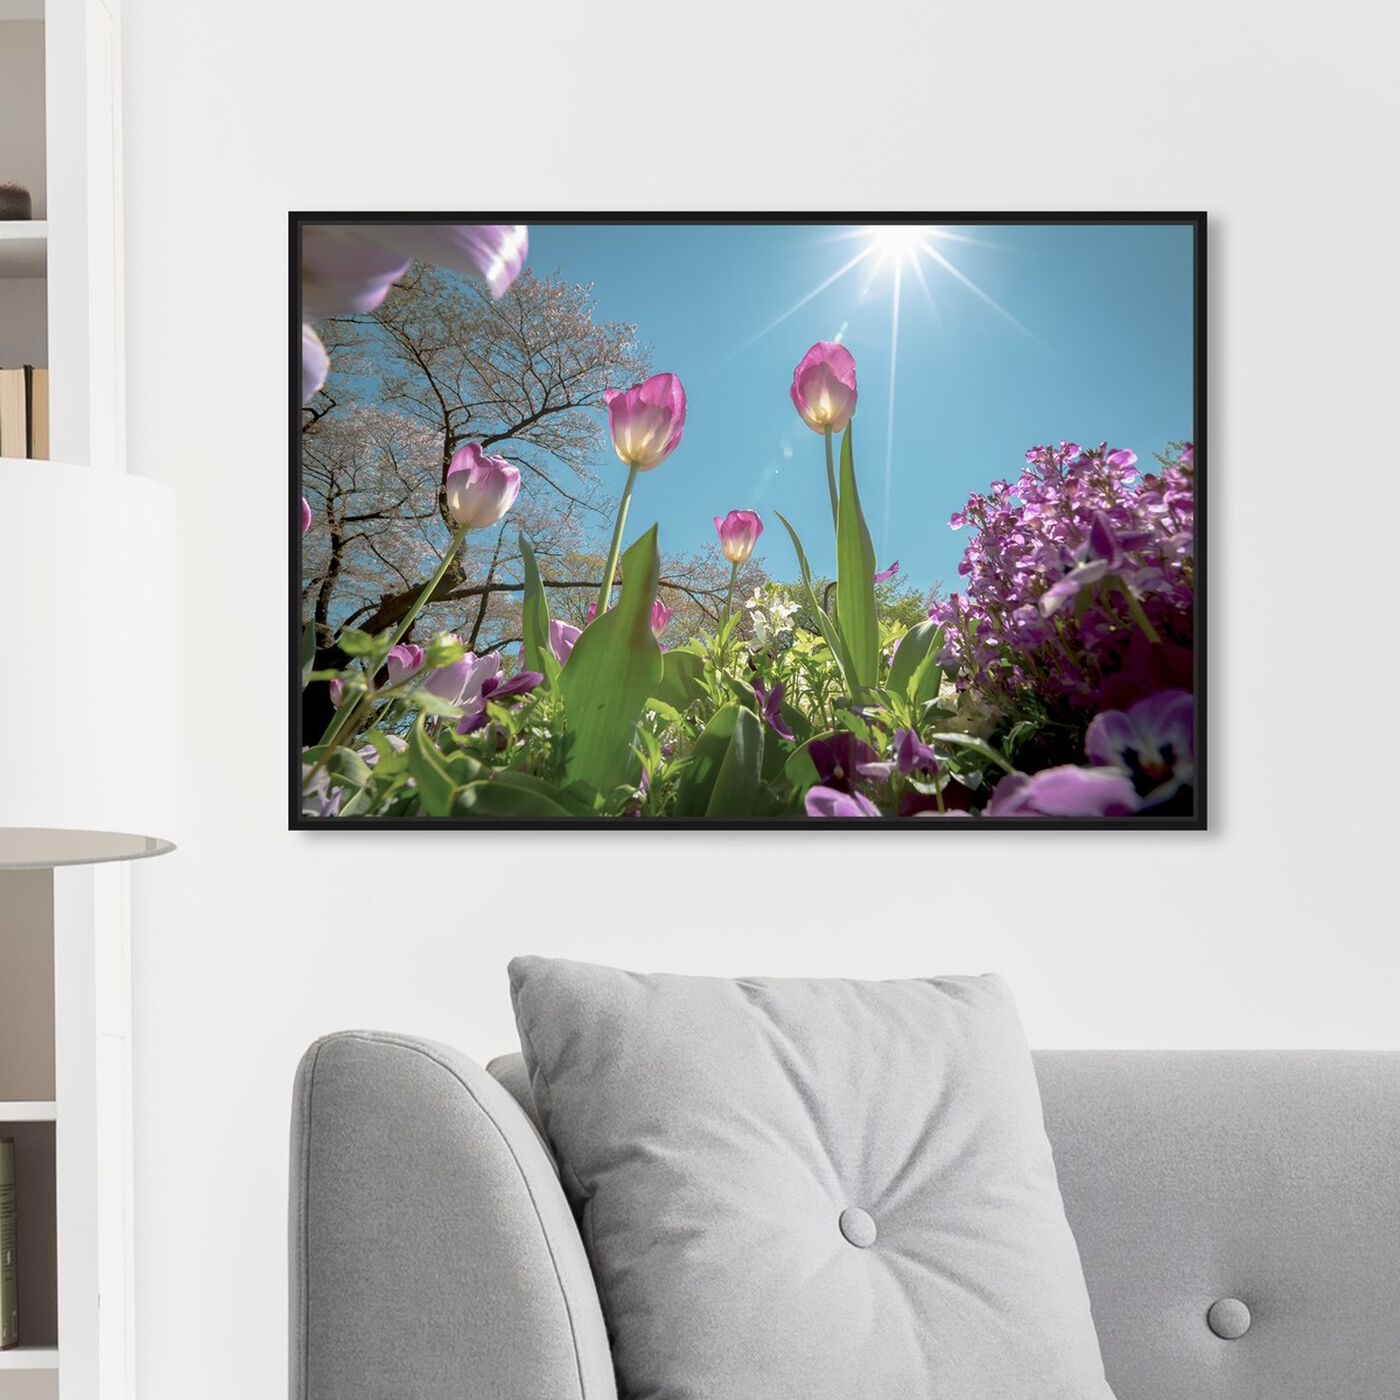 Hanging view of Curro Cardenal - Garden Full of Flowers featuring floral and botanical and florals art.